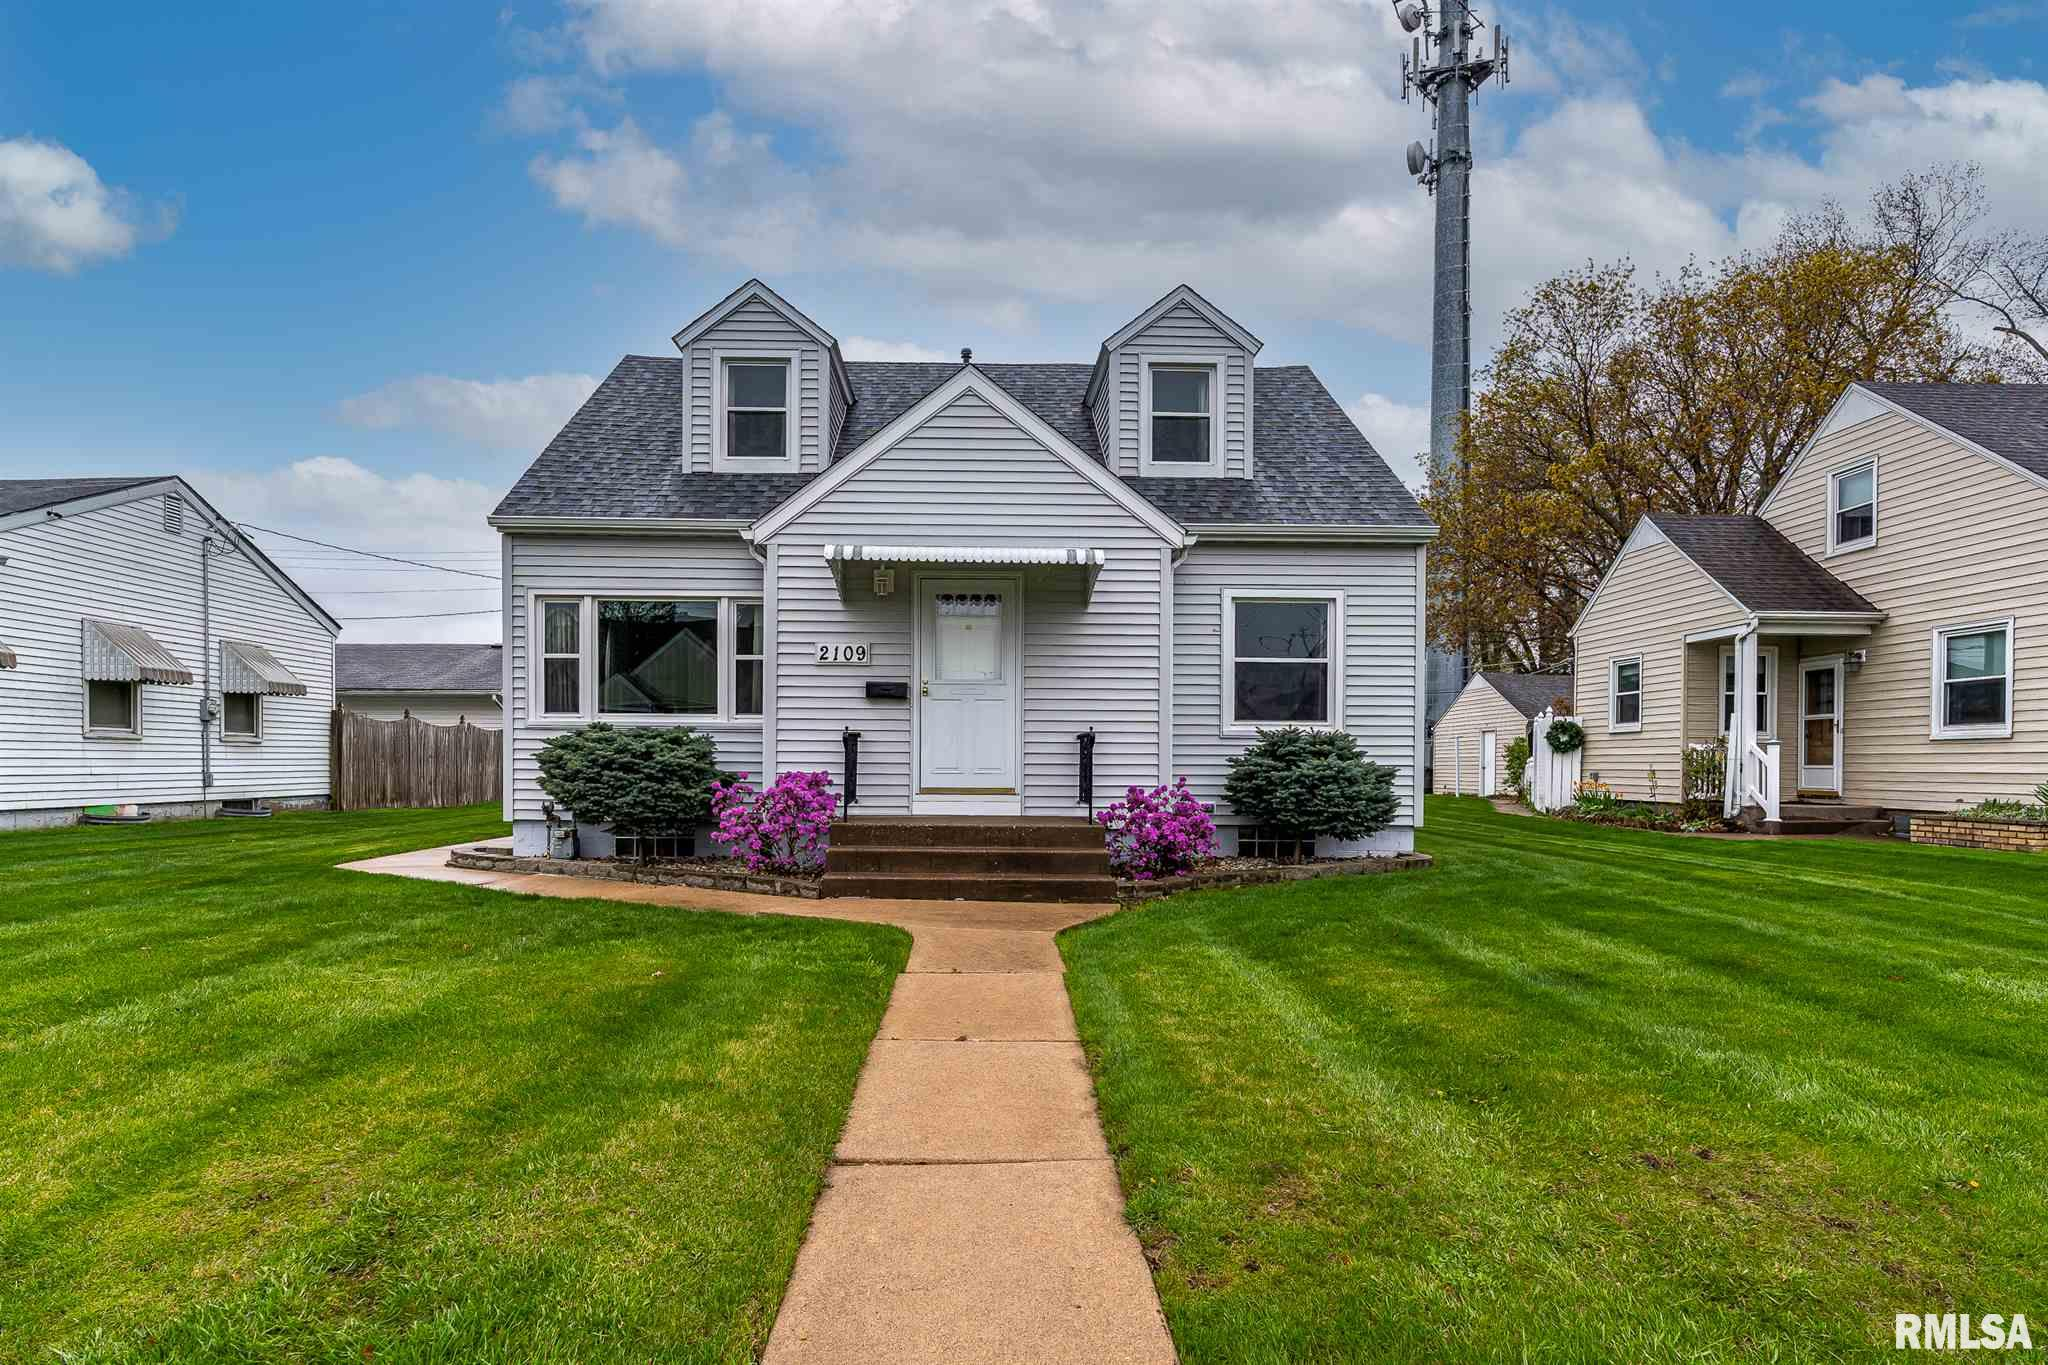 2109 CENTRAL Property Photo - Bettendorf, IA real estate listing